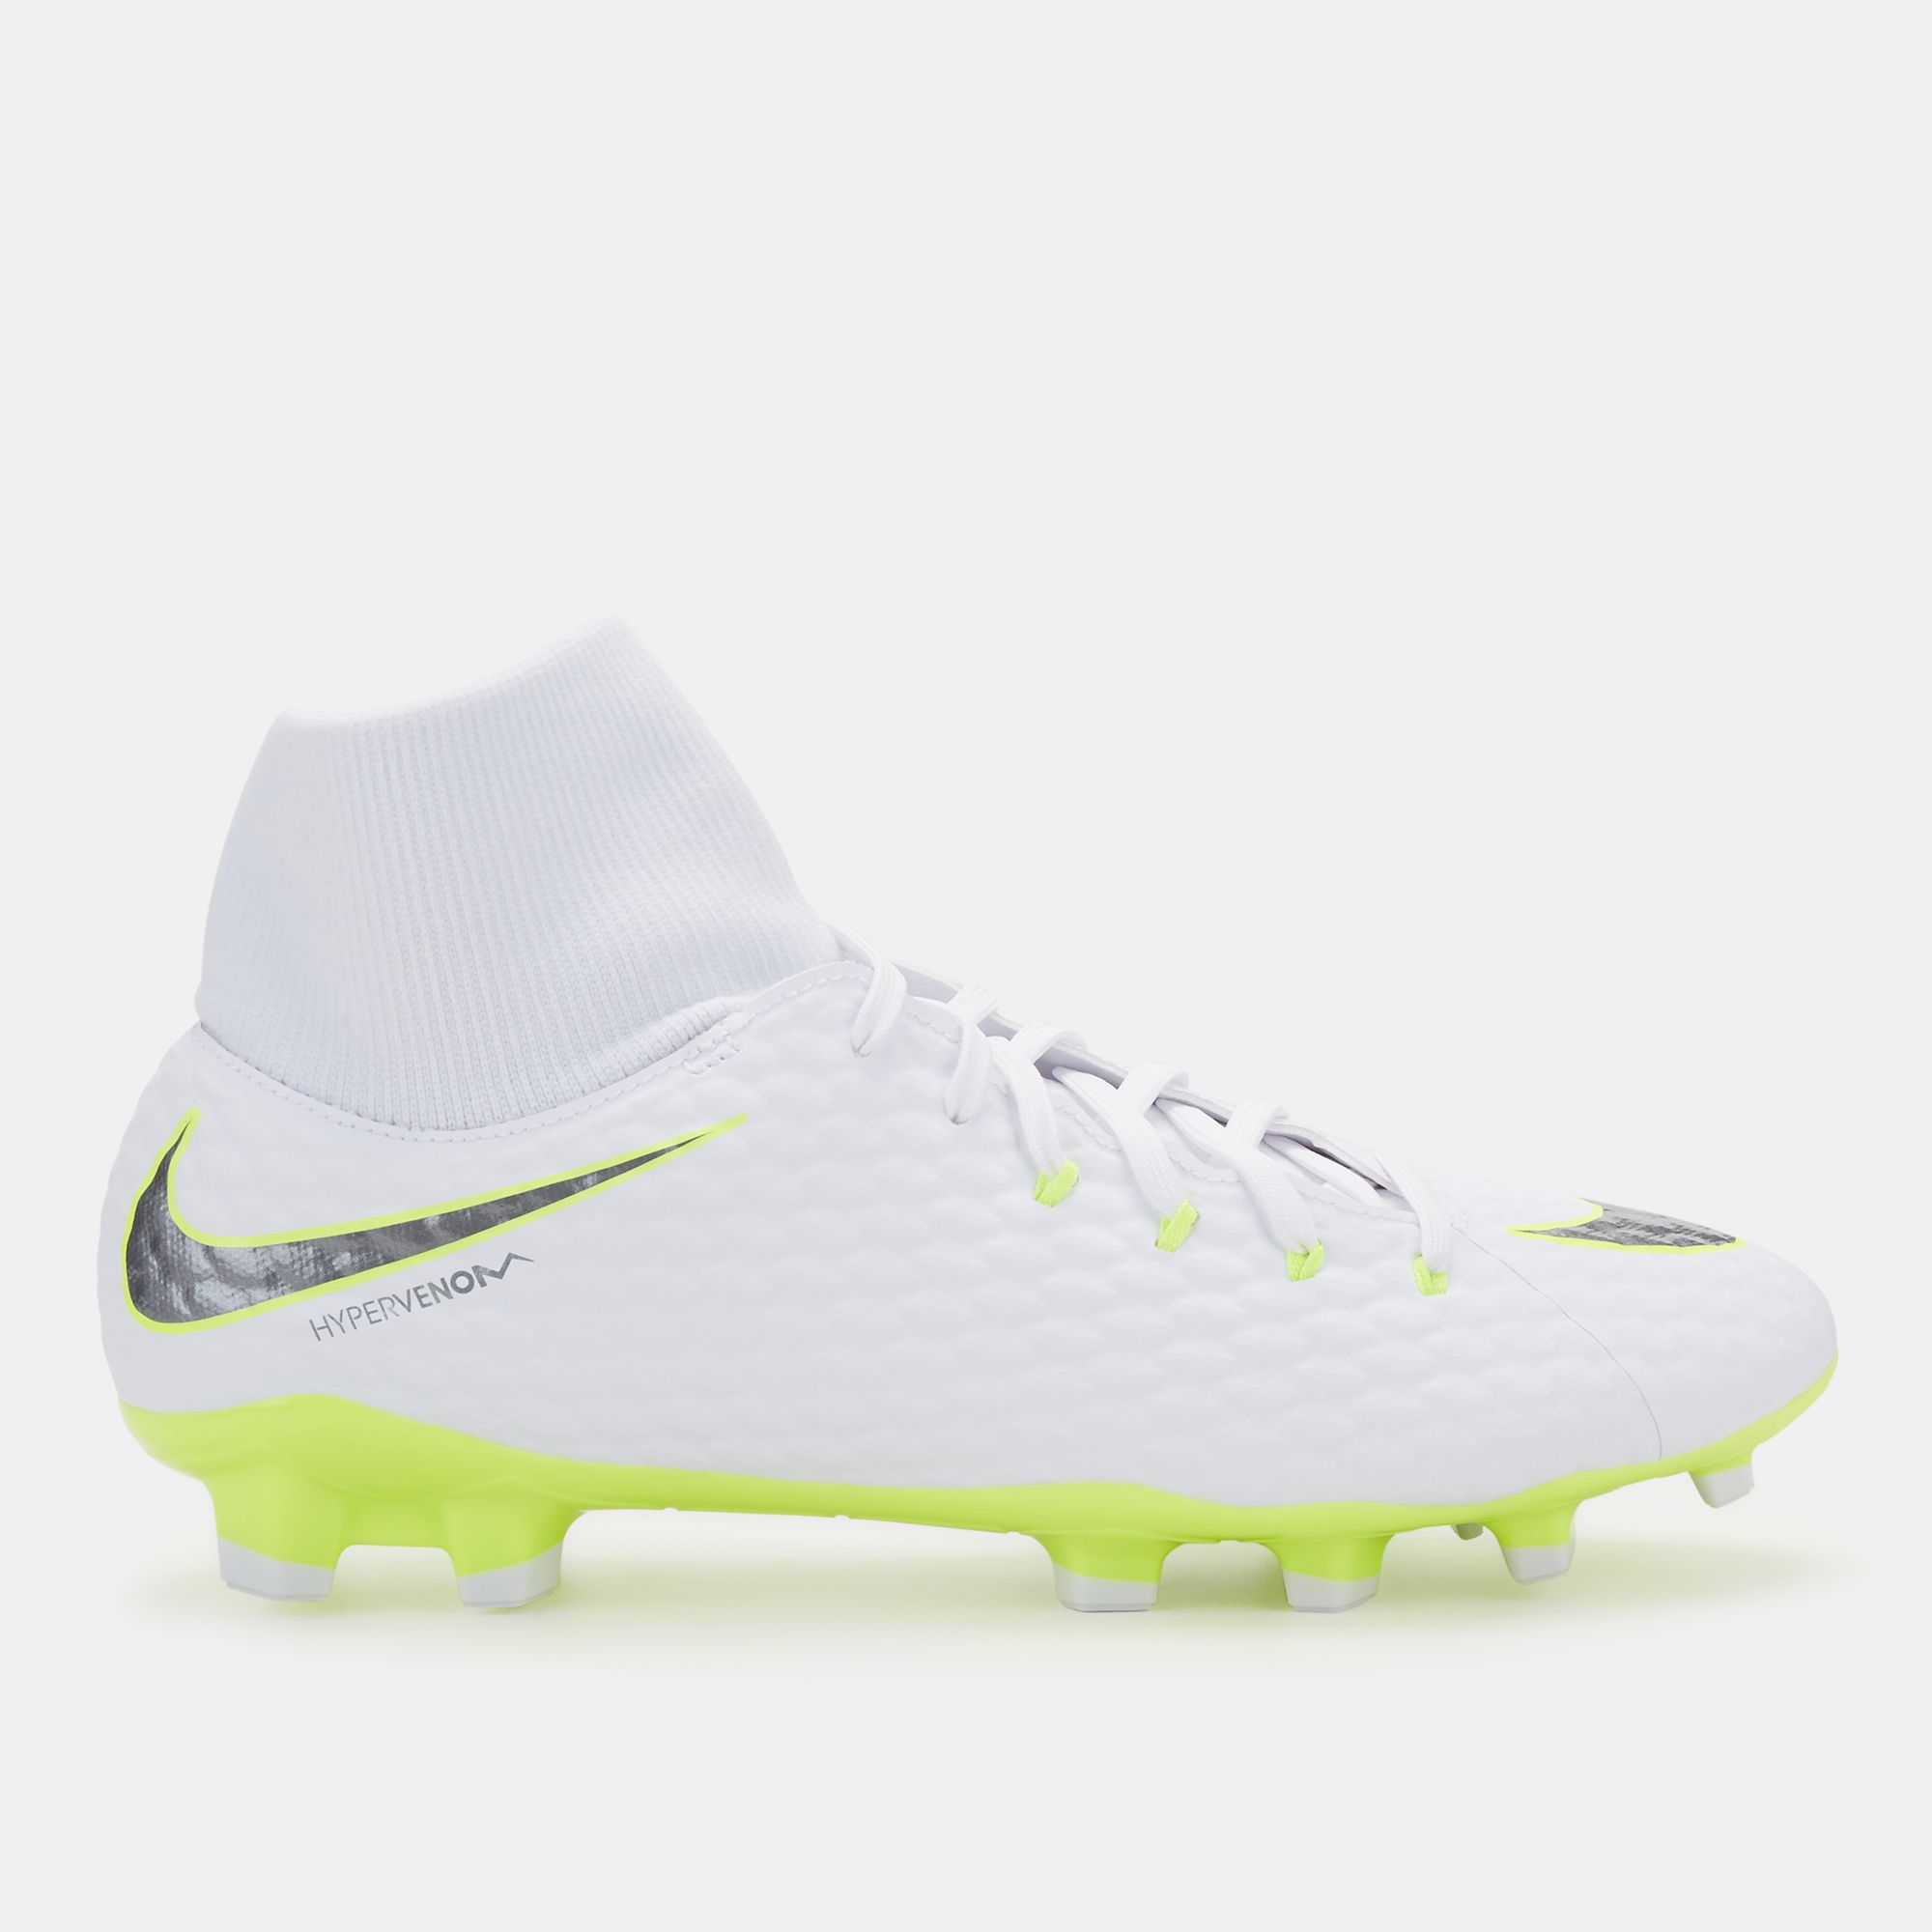 31dc0963e Nike Hypervenom Phantom III Academy Dynamic Fit Firm Ground Football Shoe